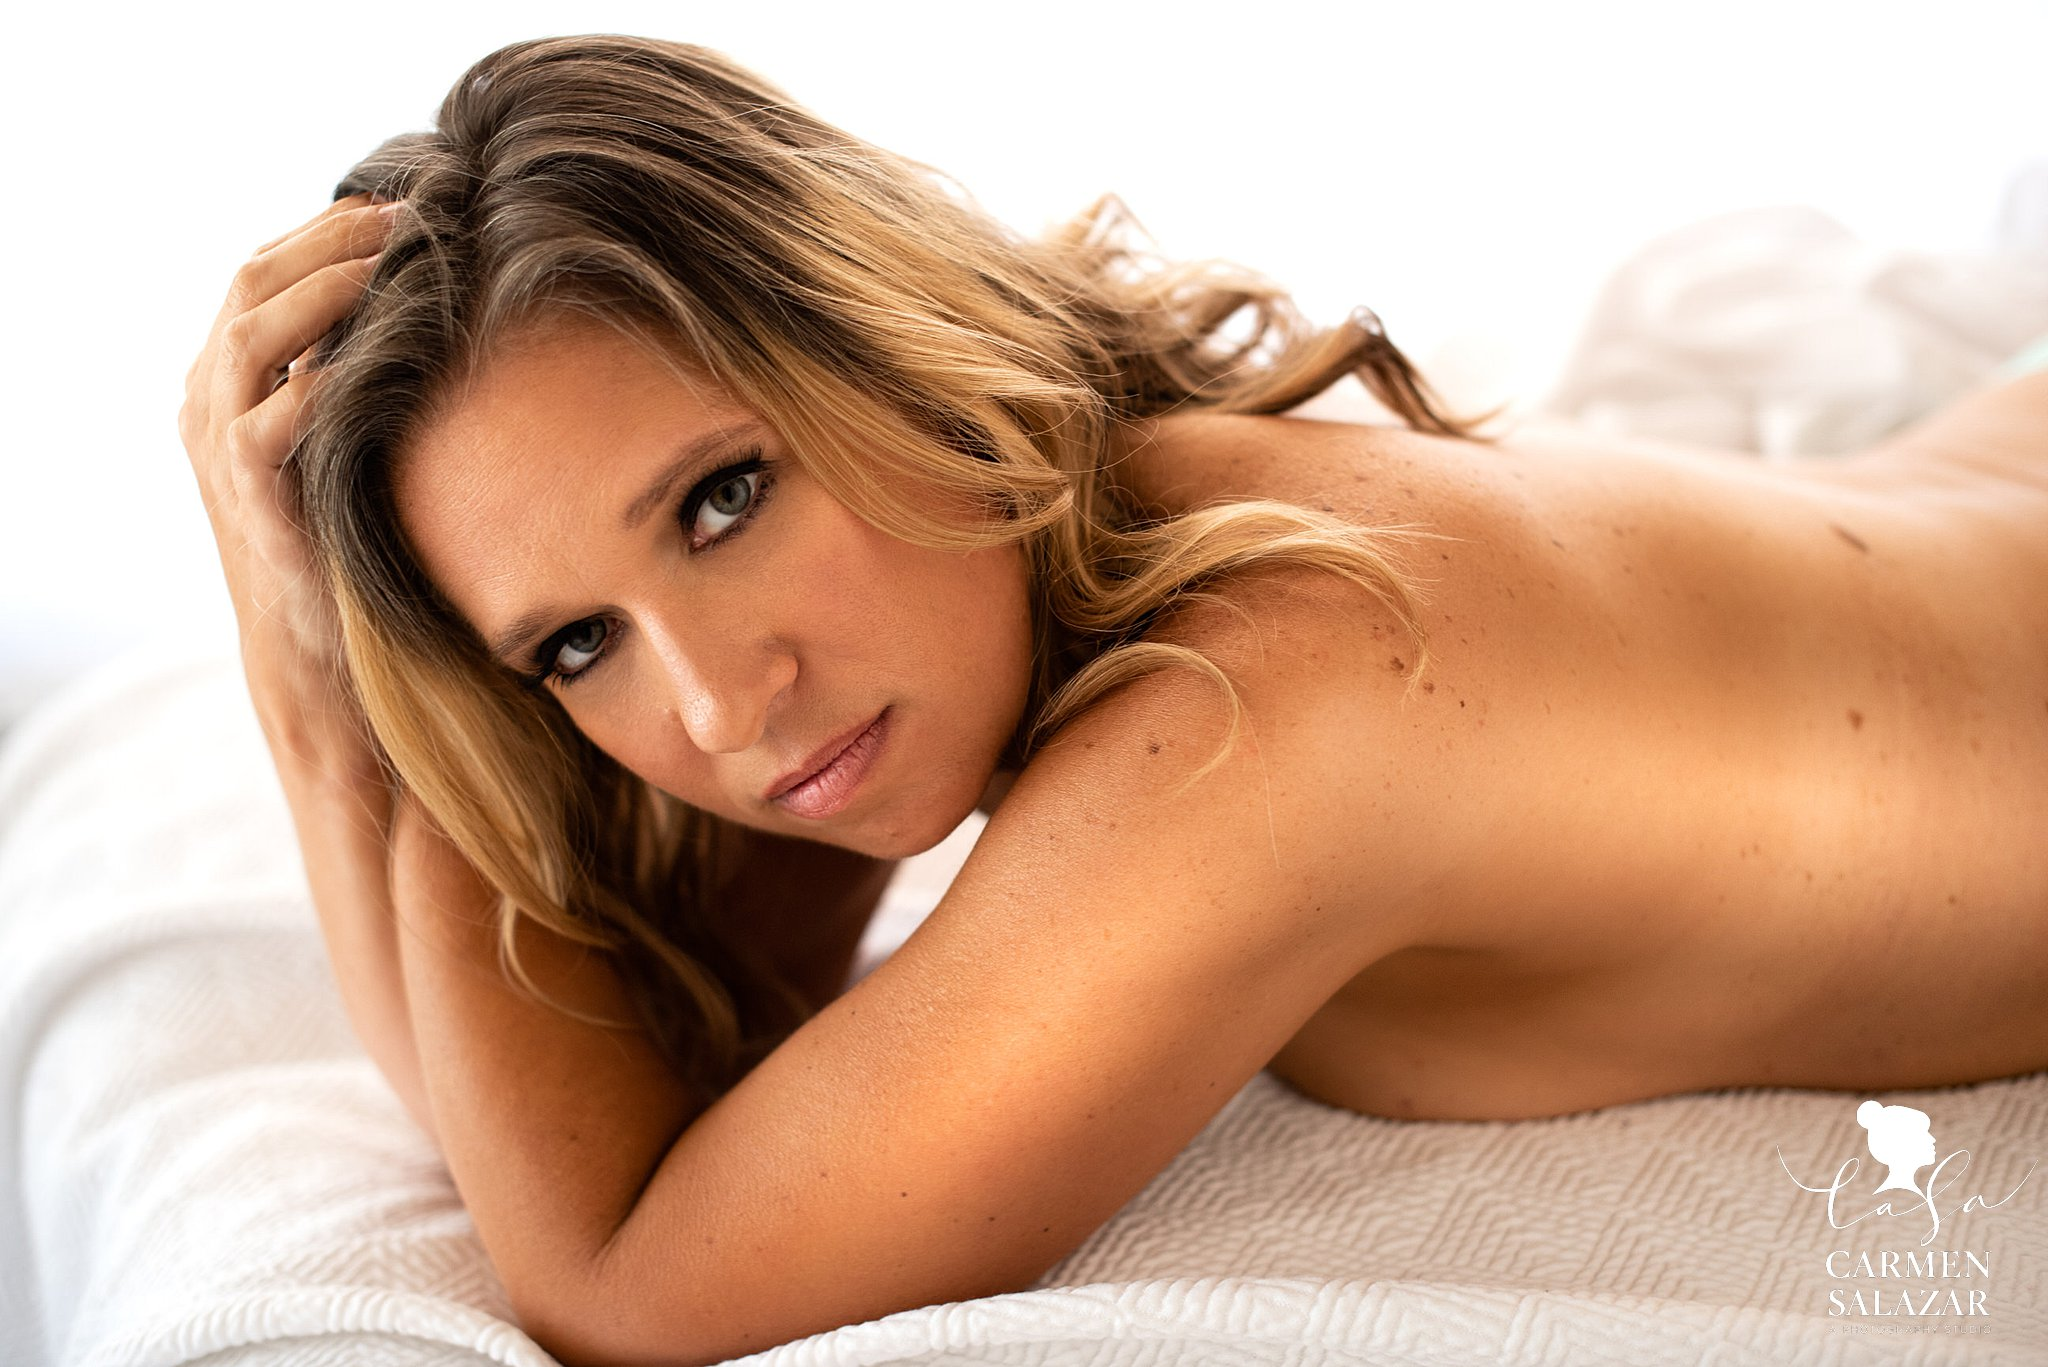 Nude boudoir photo of a woman on bed with natural light